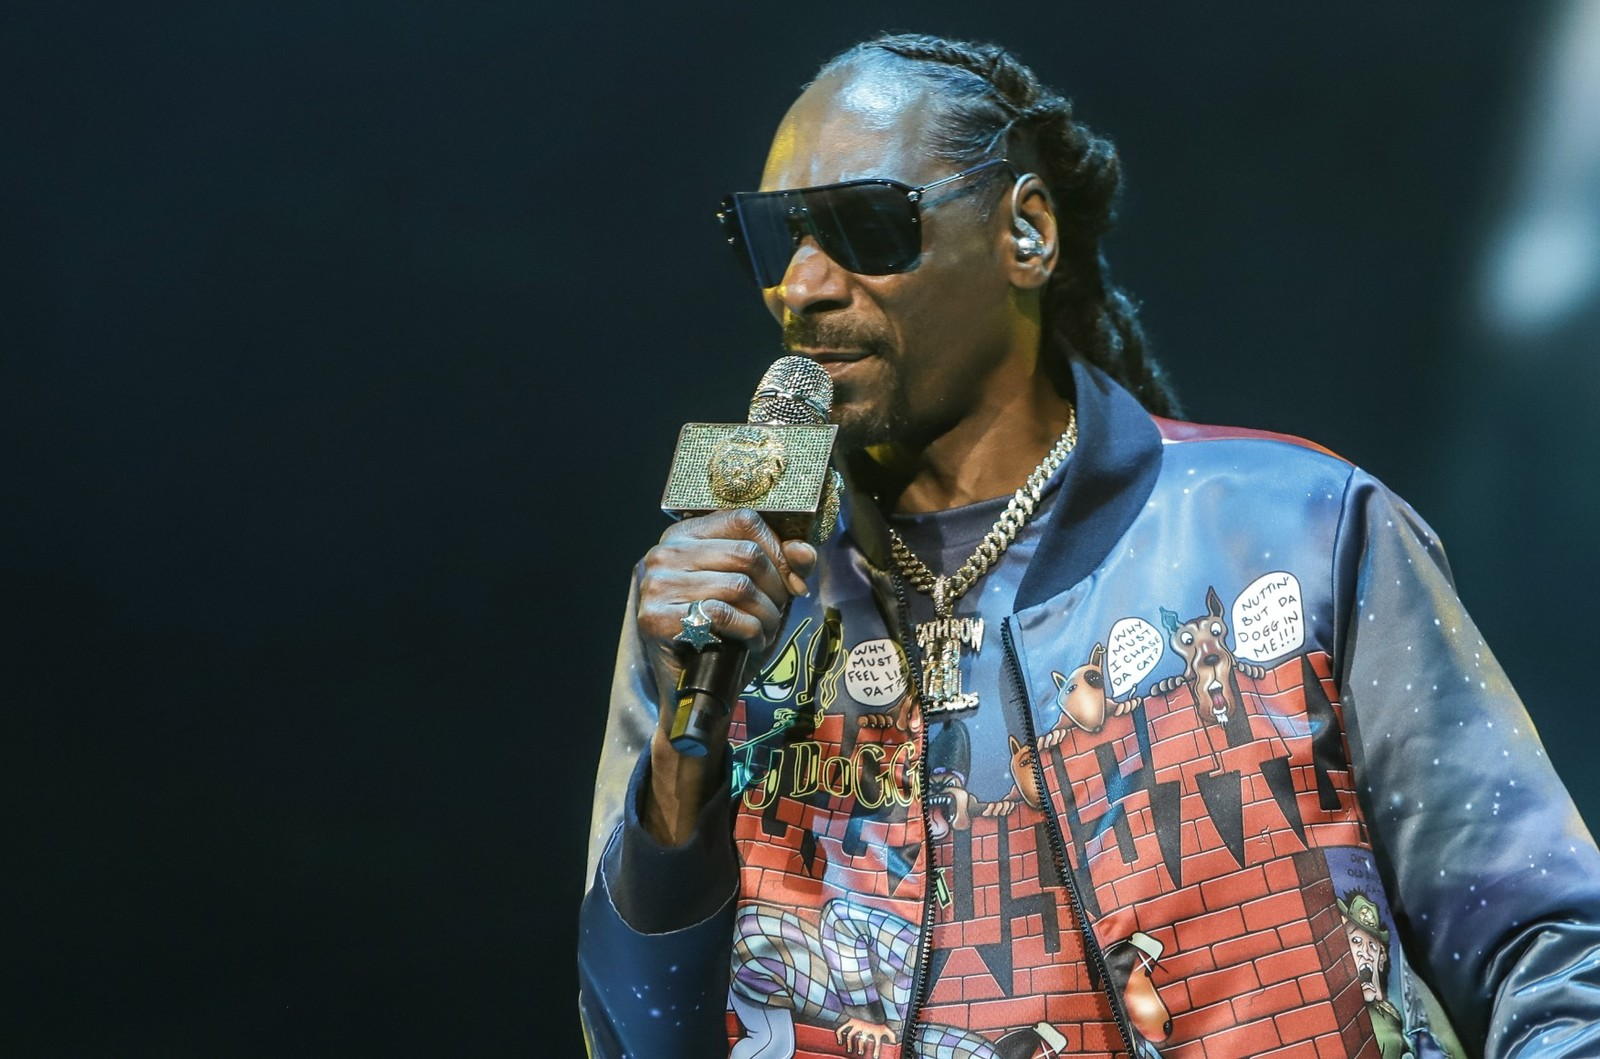 https://celebrityinsider.org/snoop-dogg-appears-on-lil-waynes-young-money-podcast-to-talk-about-defunding-the-police-and-more-404316/